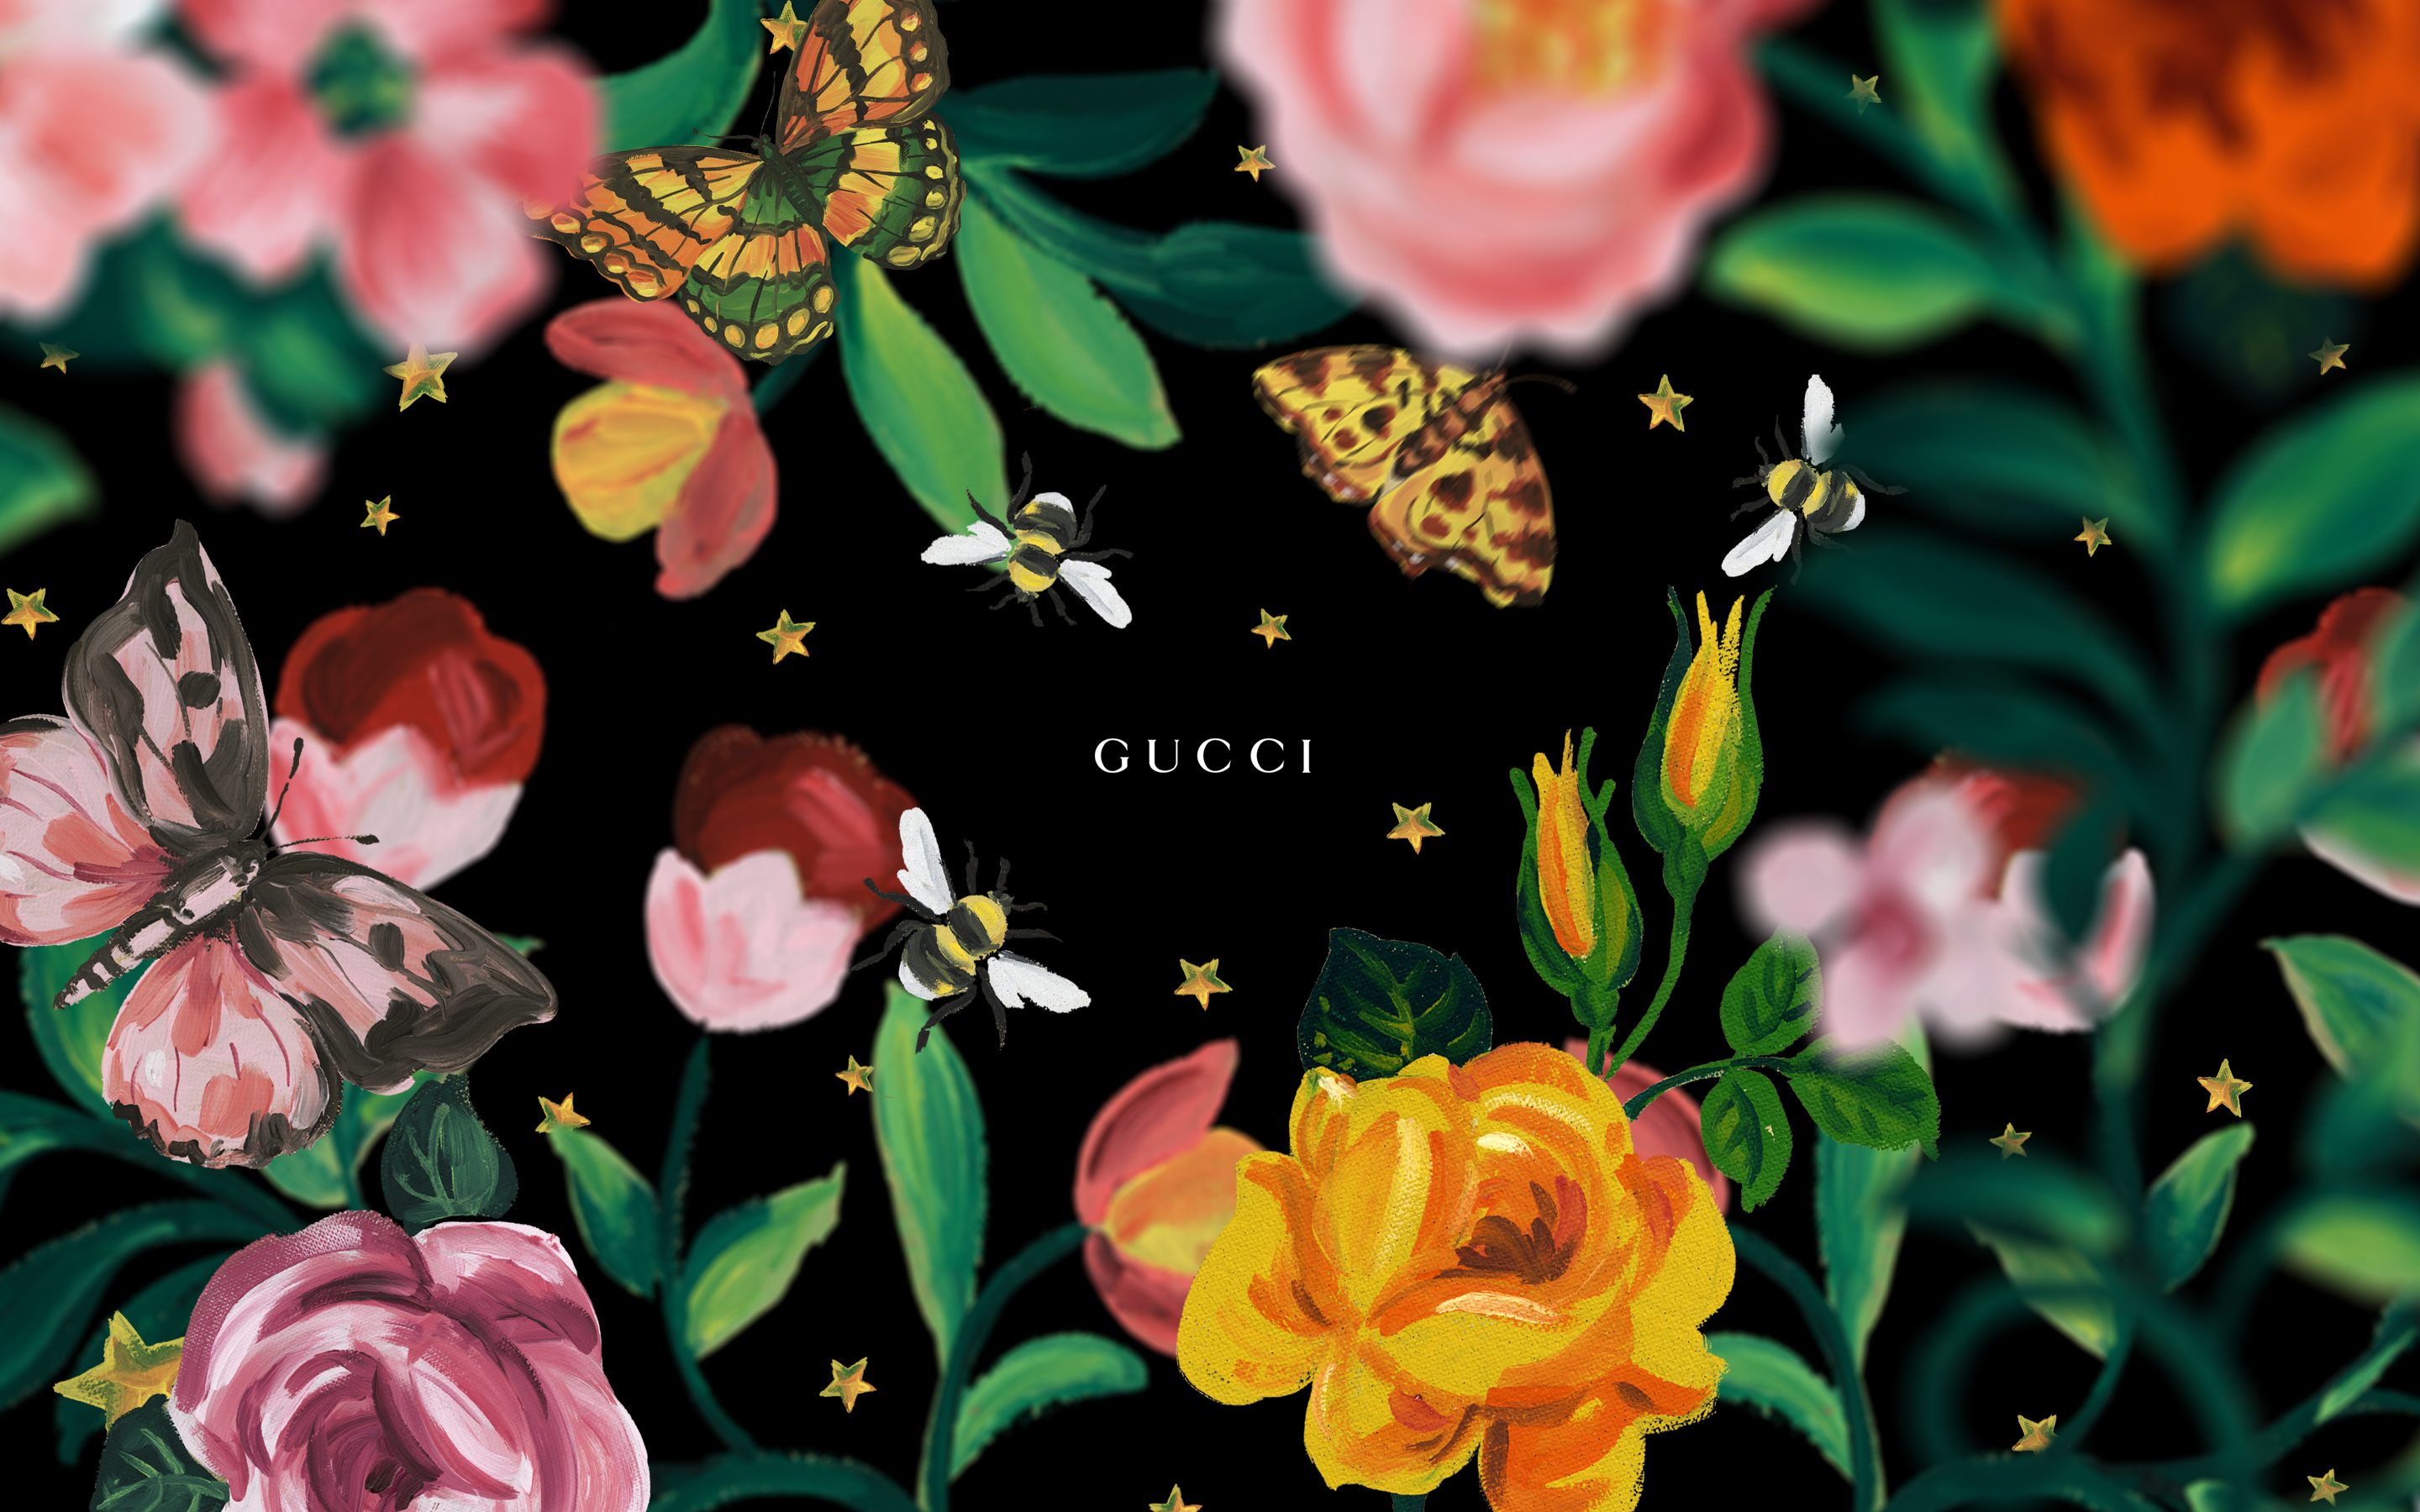 Floral Print Iphone Wallpaper Gucci Garden Screensaver Gucci Official Site United States